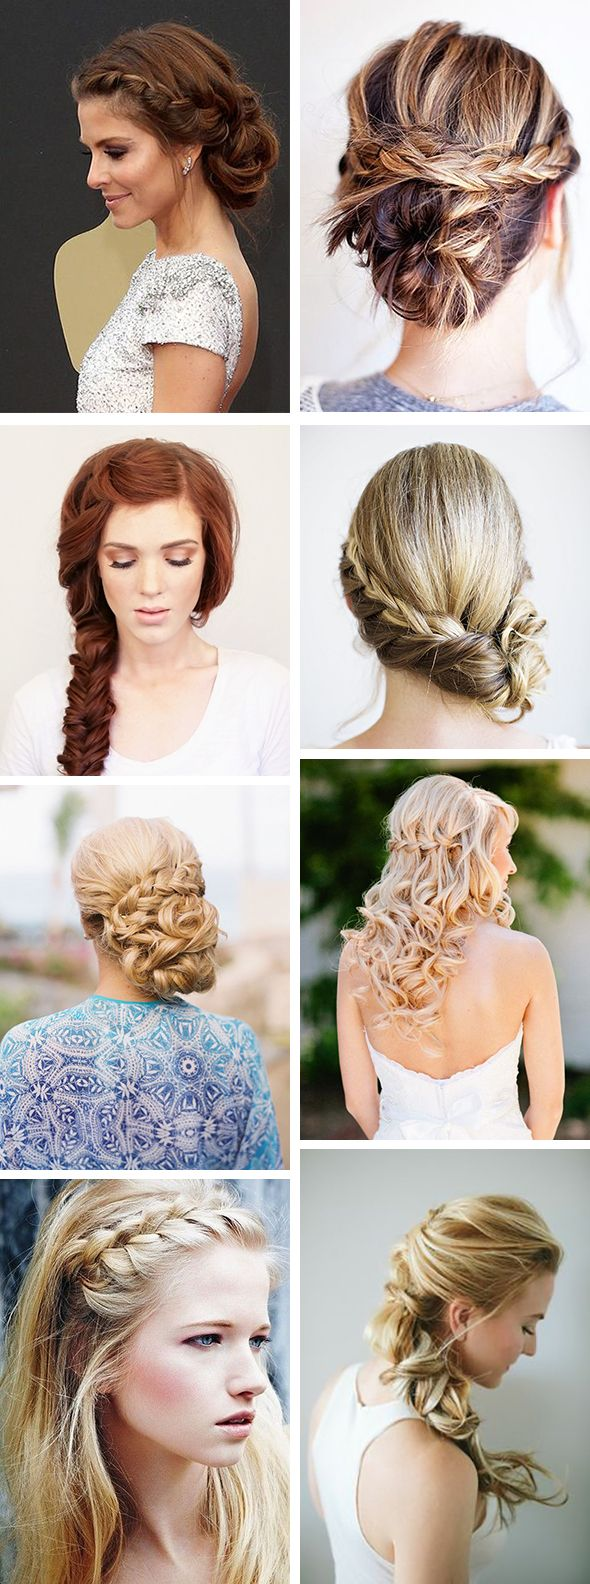 braid wedding hair styles Braided Hair Styles for Your Beach Wedding